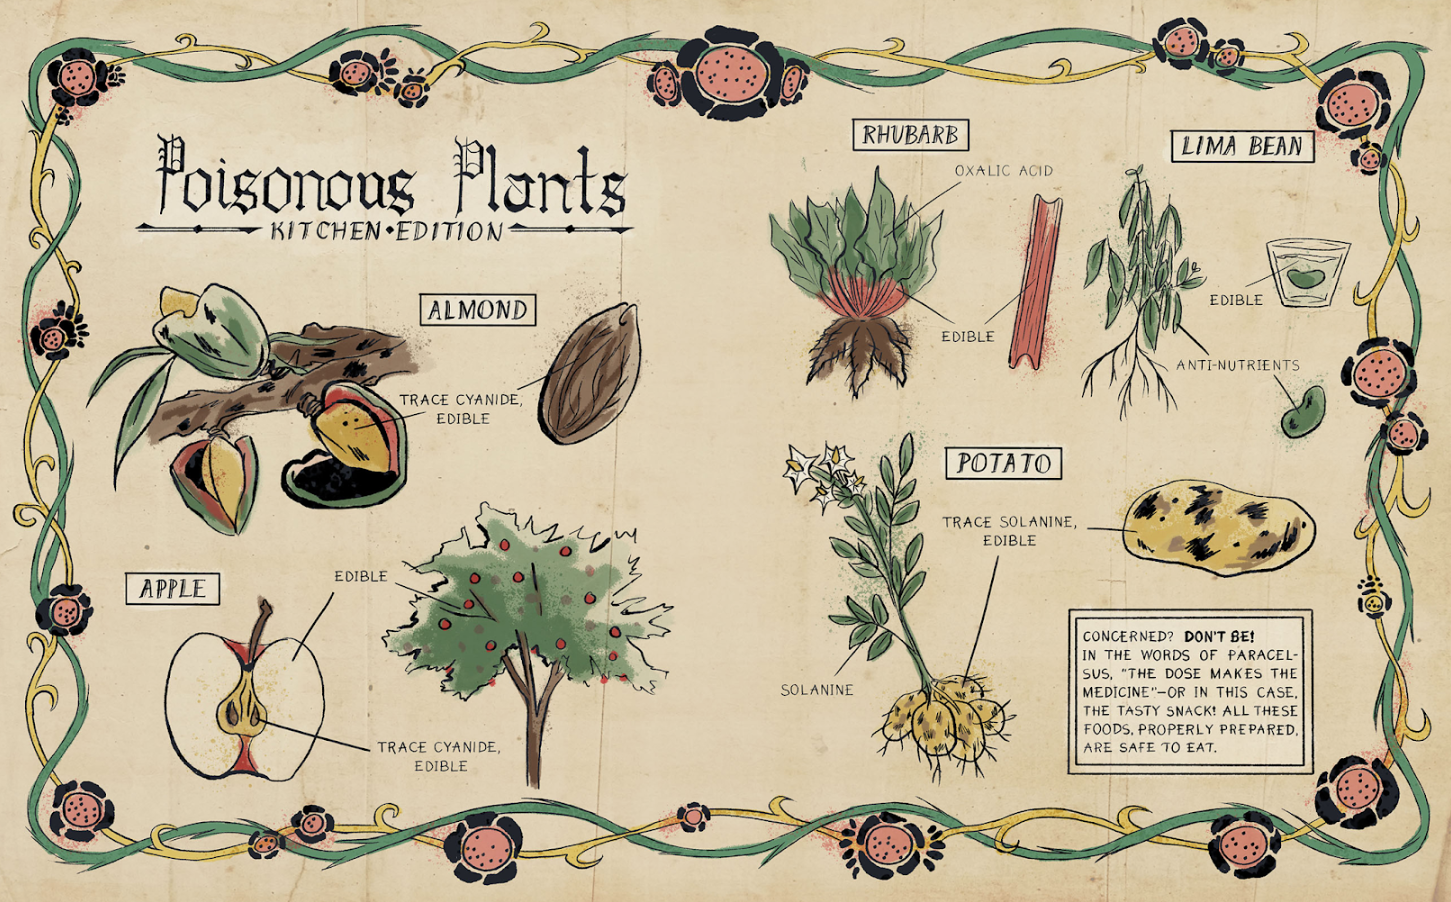 Poisonous Plants, by Nina Gookin